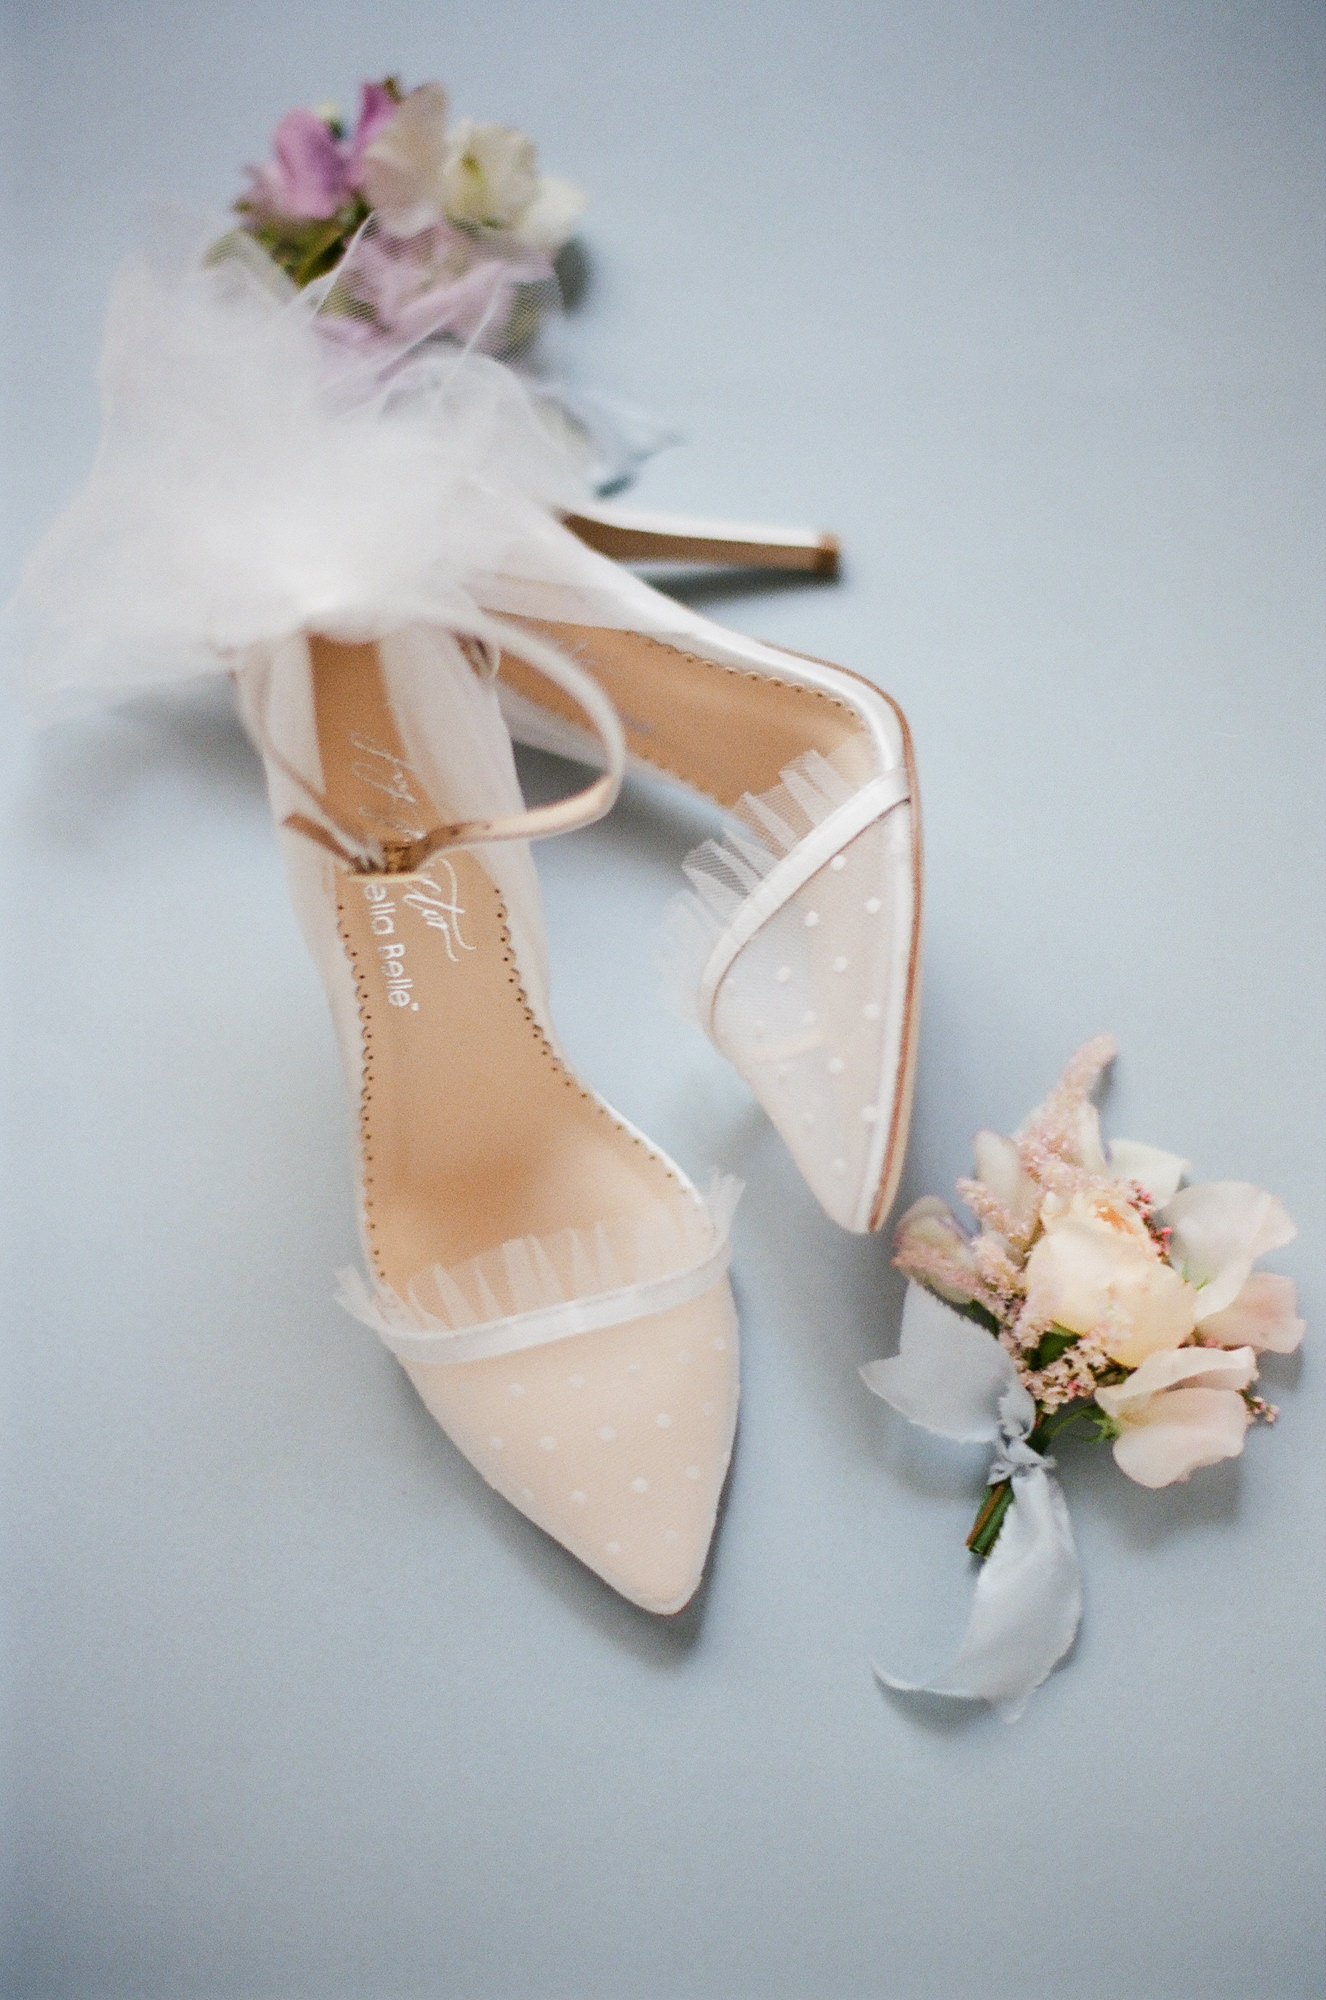 Joy Proctor tulle shoes - photo by Greg Finck